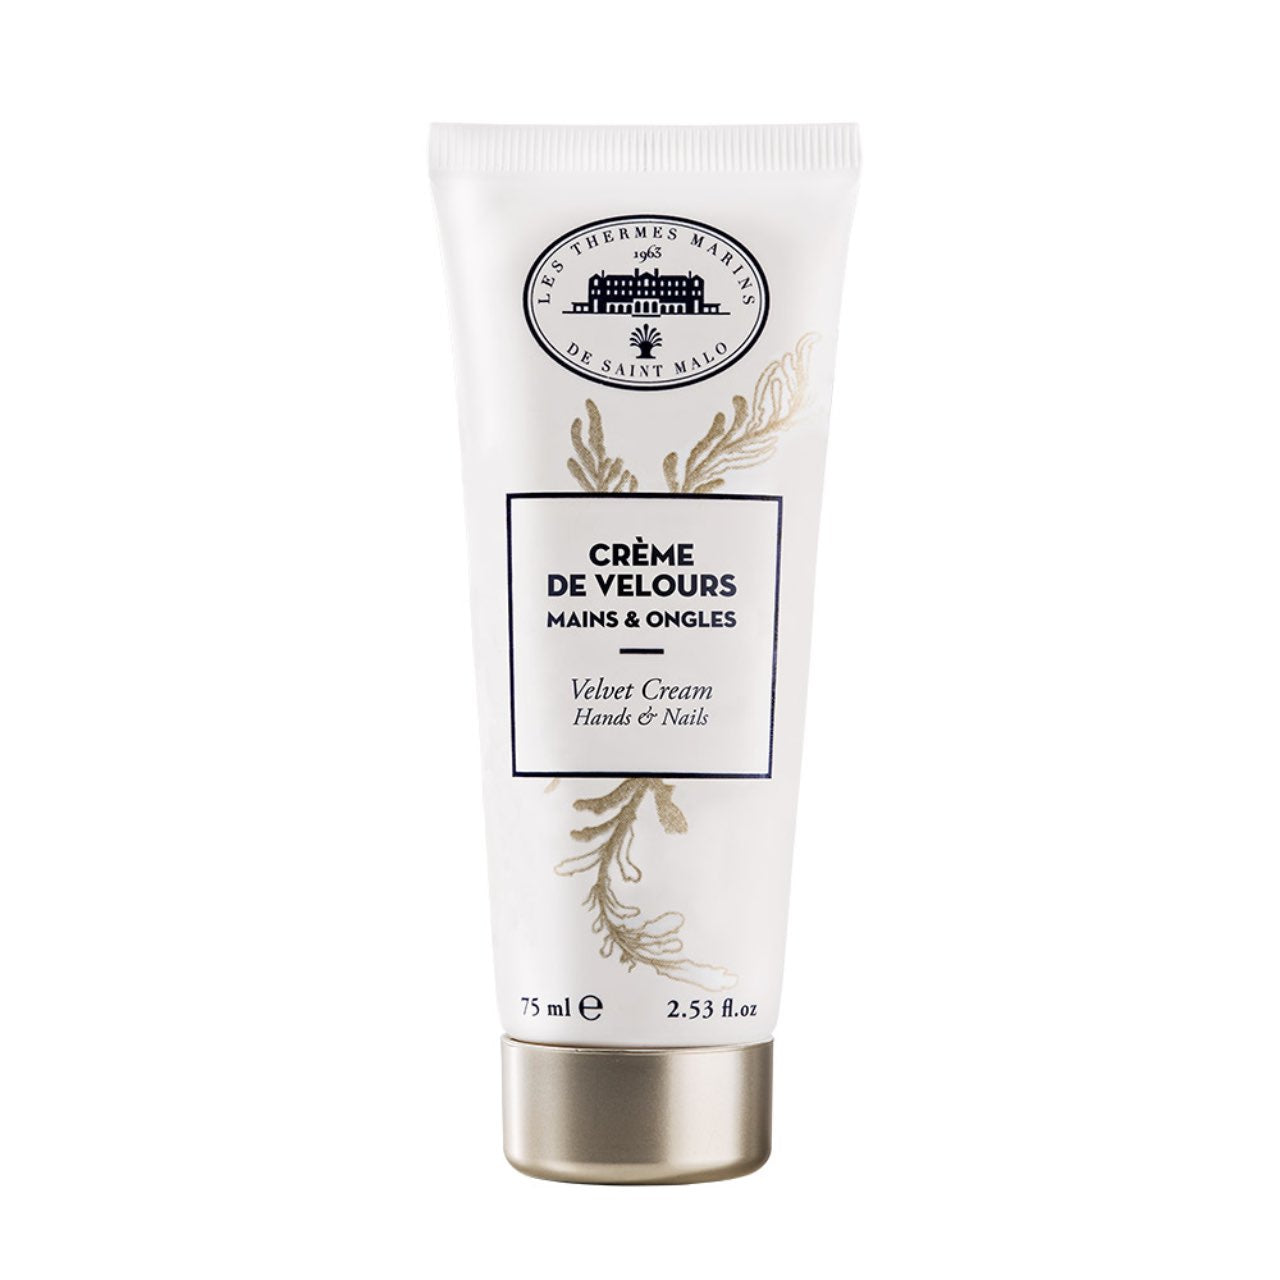 THERMES MARINS Velvet Cream for Hands and Nails